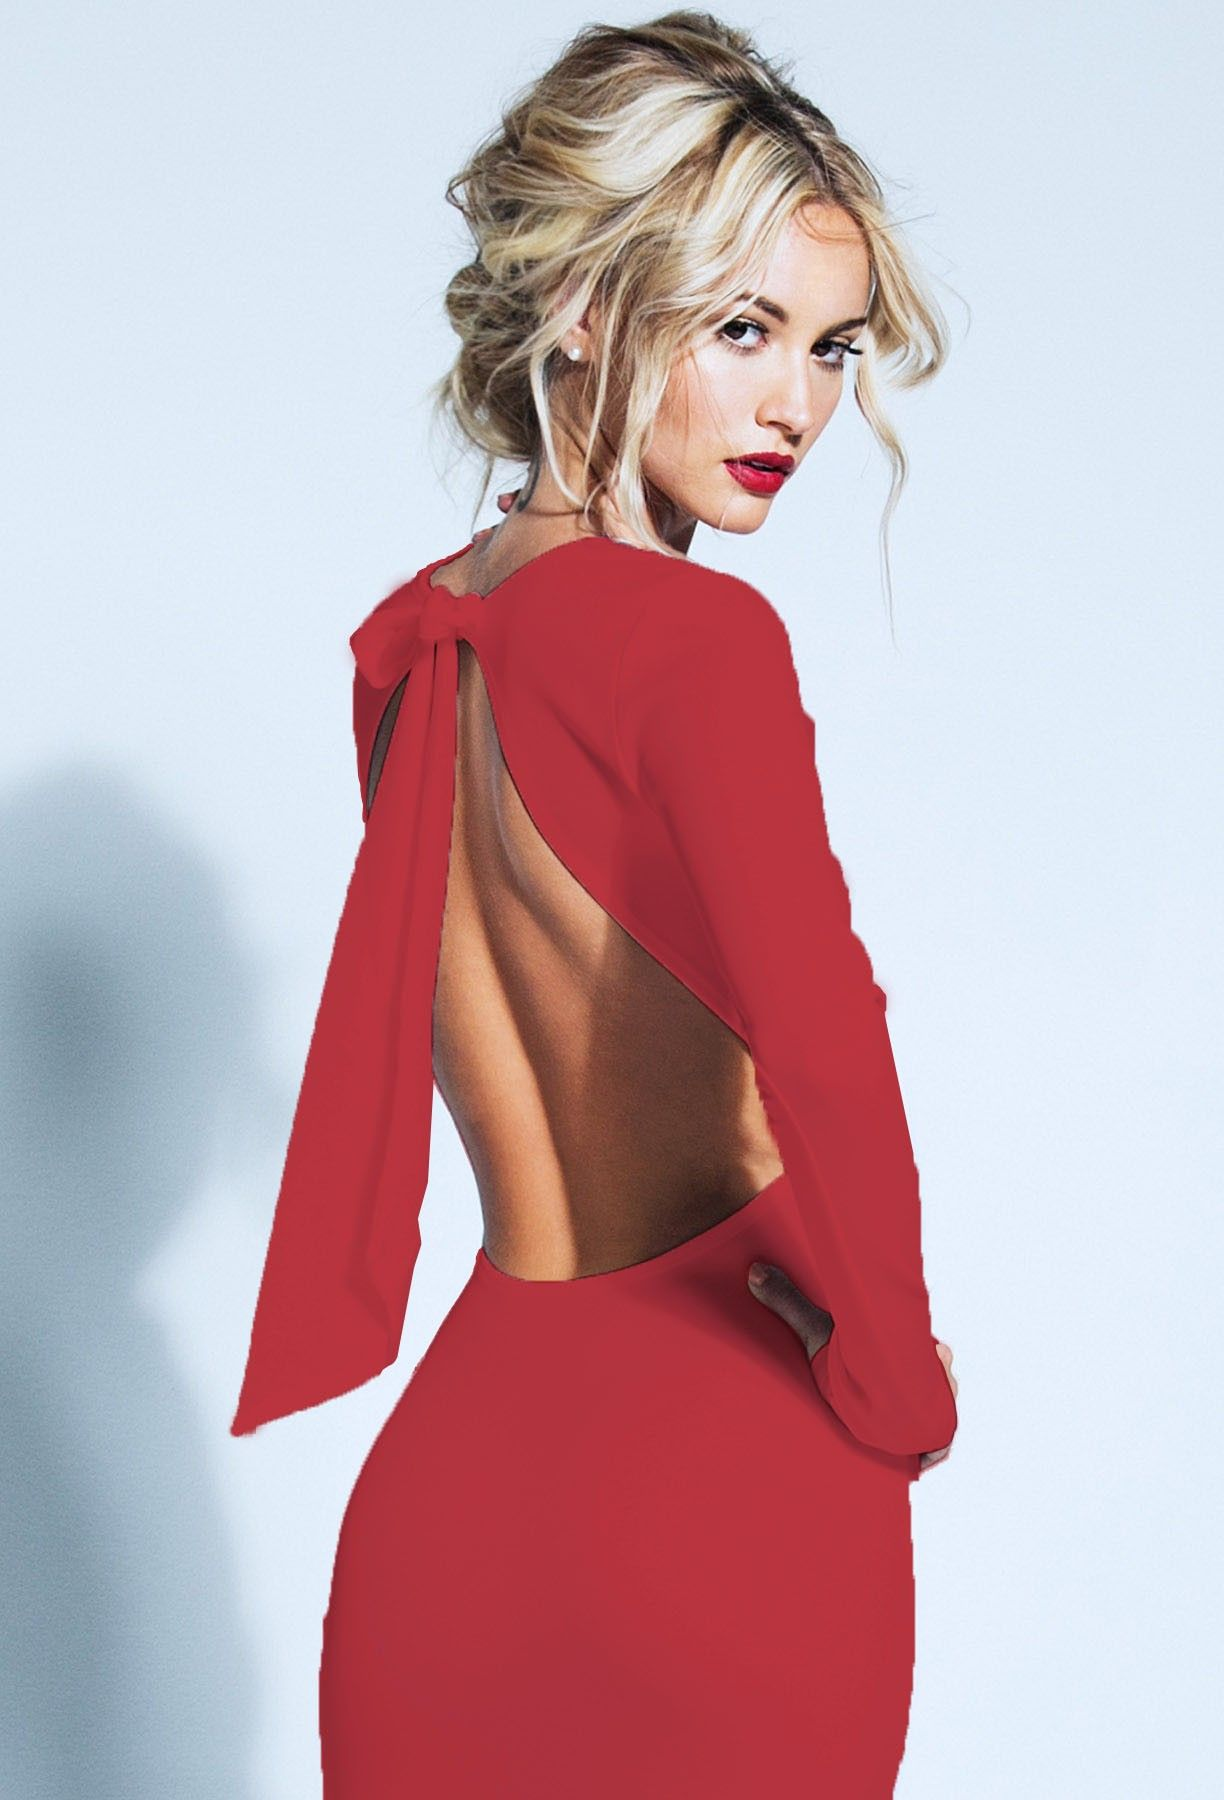 Lurelly backless bow dress voyages poses ailleurs pinterest